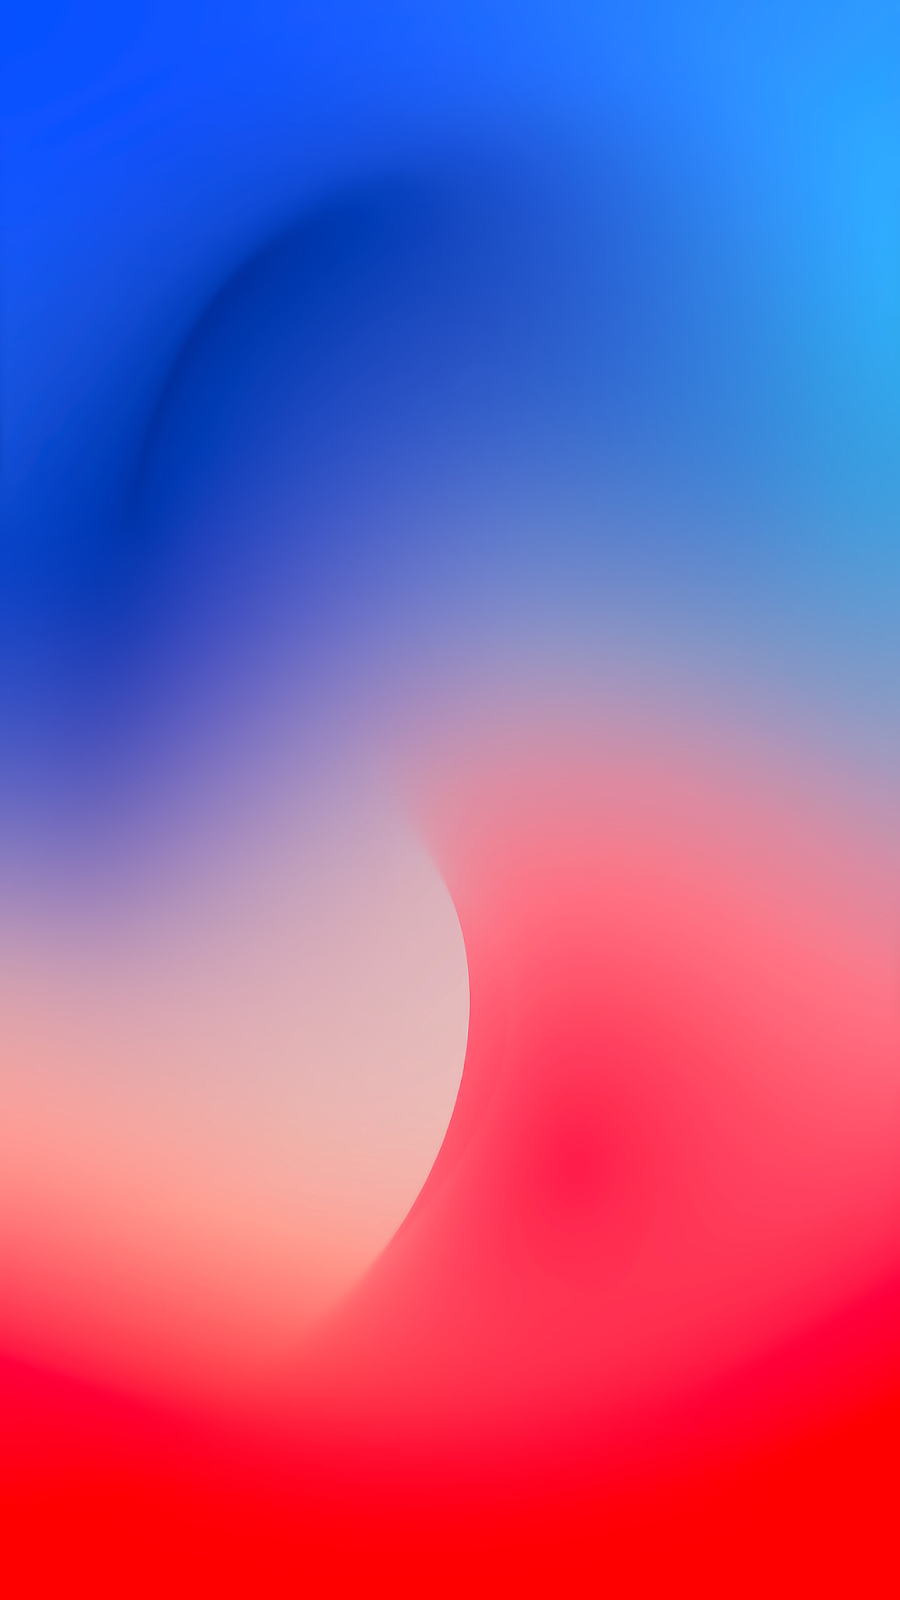 Fluid Blue And Red By Ar72014 4k Iphone Wallpaper Sky Iphone Homescreen Wallpaper Phone Wallpaper Patterns